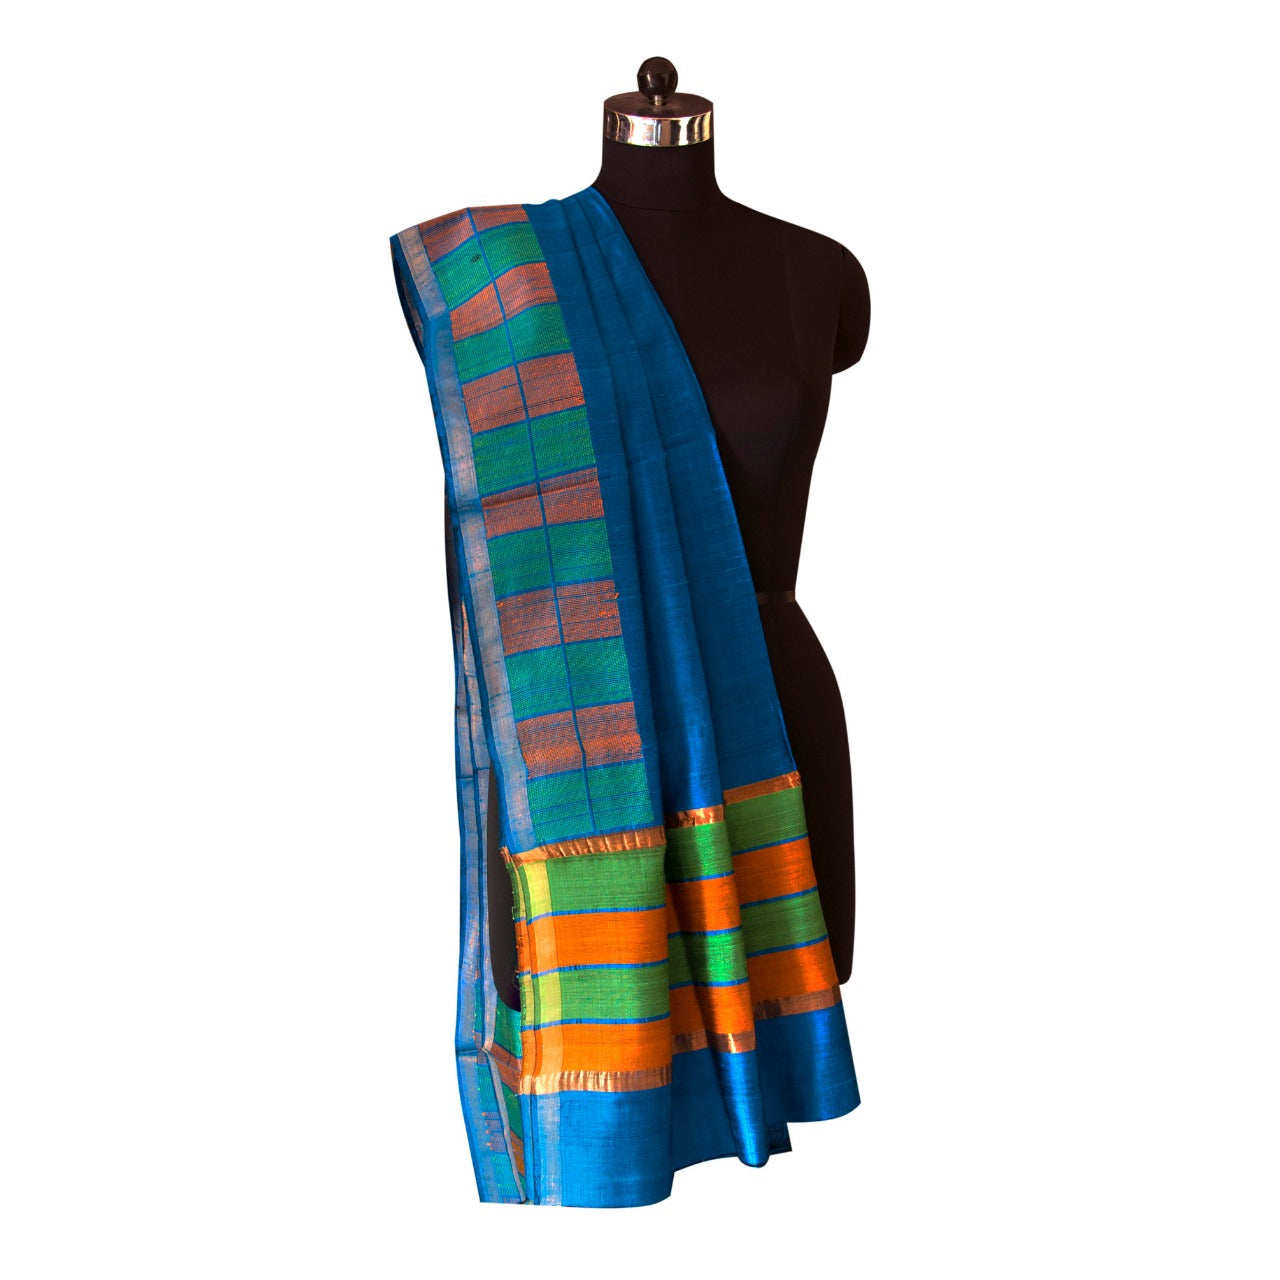 Handwoven Tussar silk Dupatta in Electric Blue Color with Orange and Green color blocked border